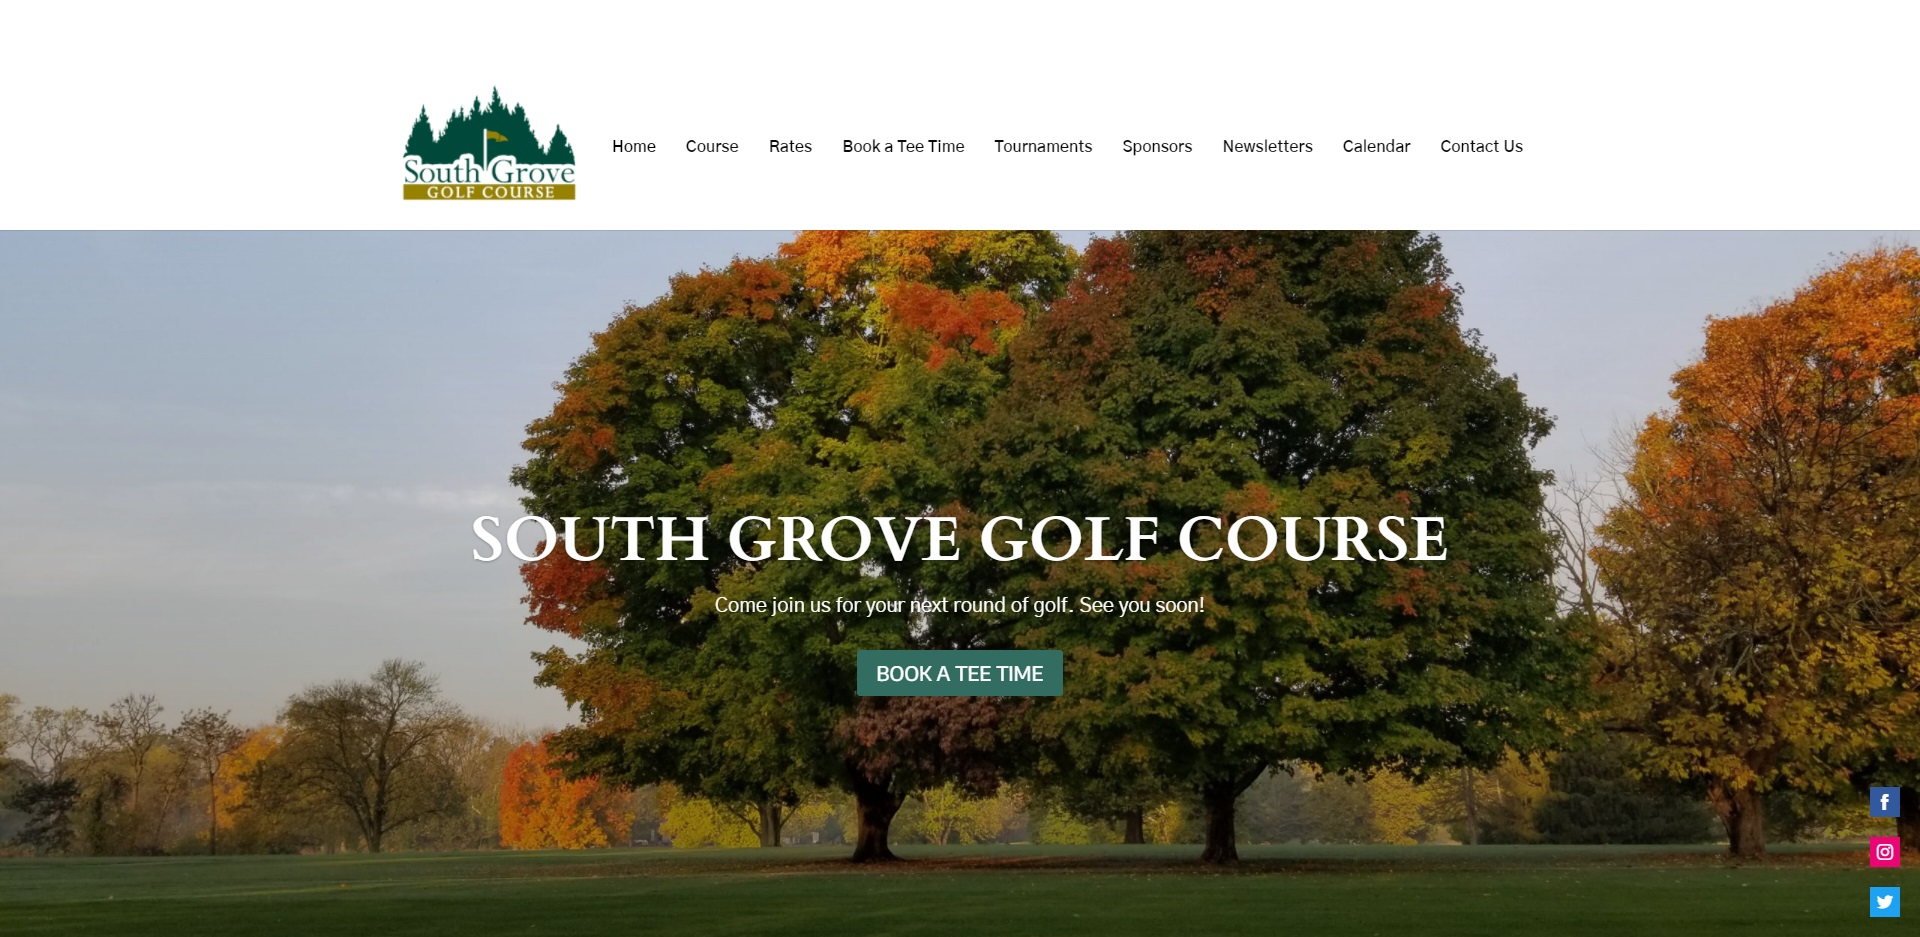 The Best Golf Courses in Indianapolis